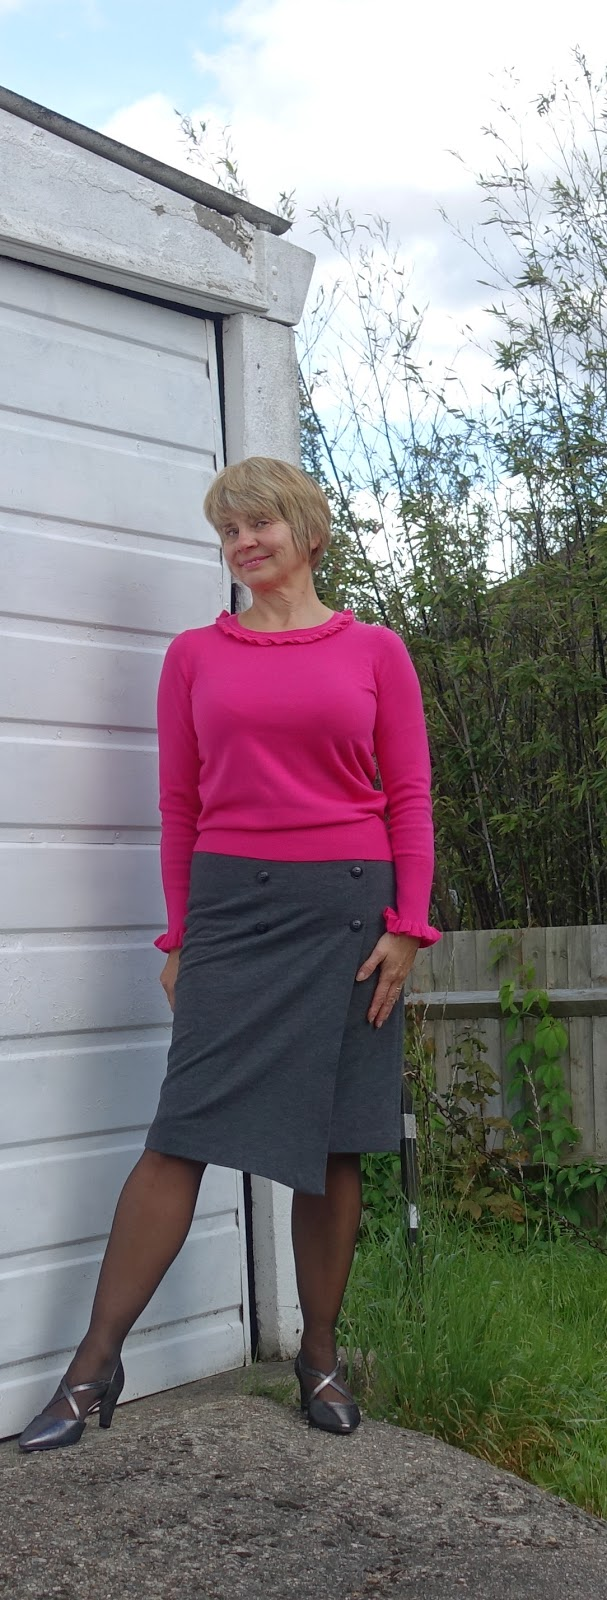 A touch of pink for autumn 2017 with Boden's Bernadette jumper and a grey skirt